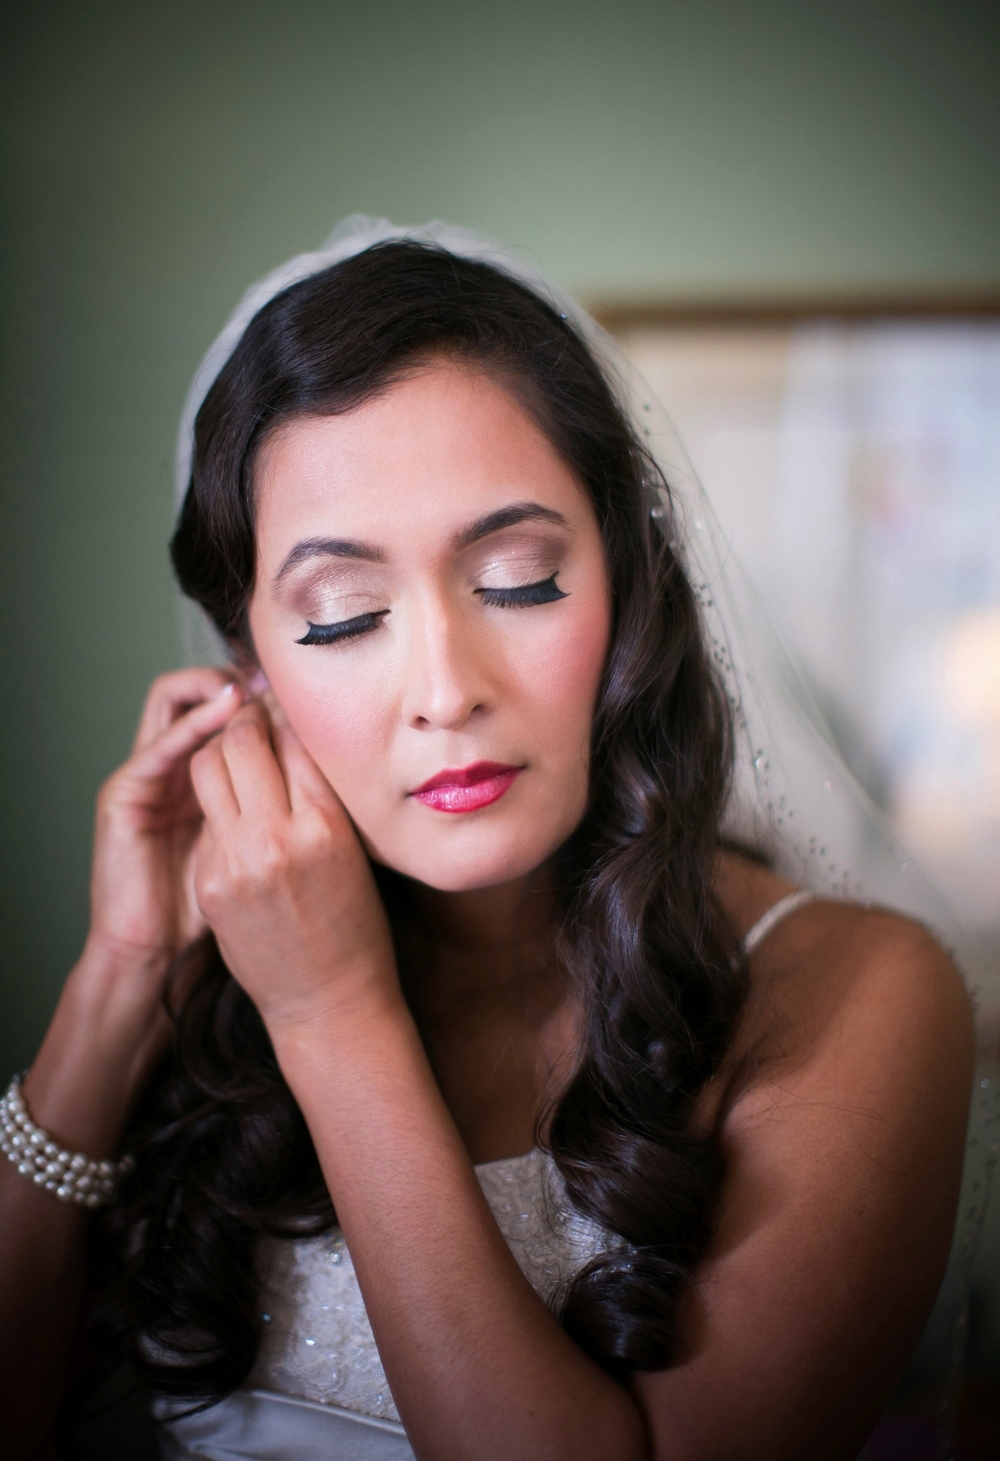 Airbrush Bridal Makeup by Beyond Beautiful by Heather, Savannah, GA.